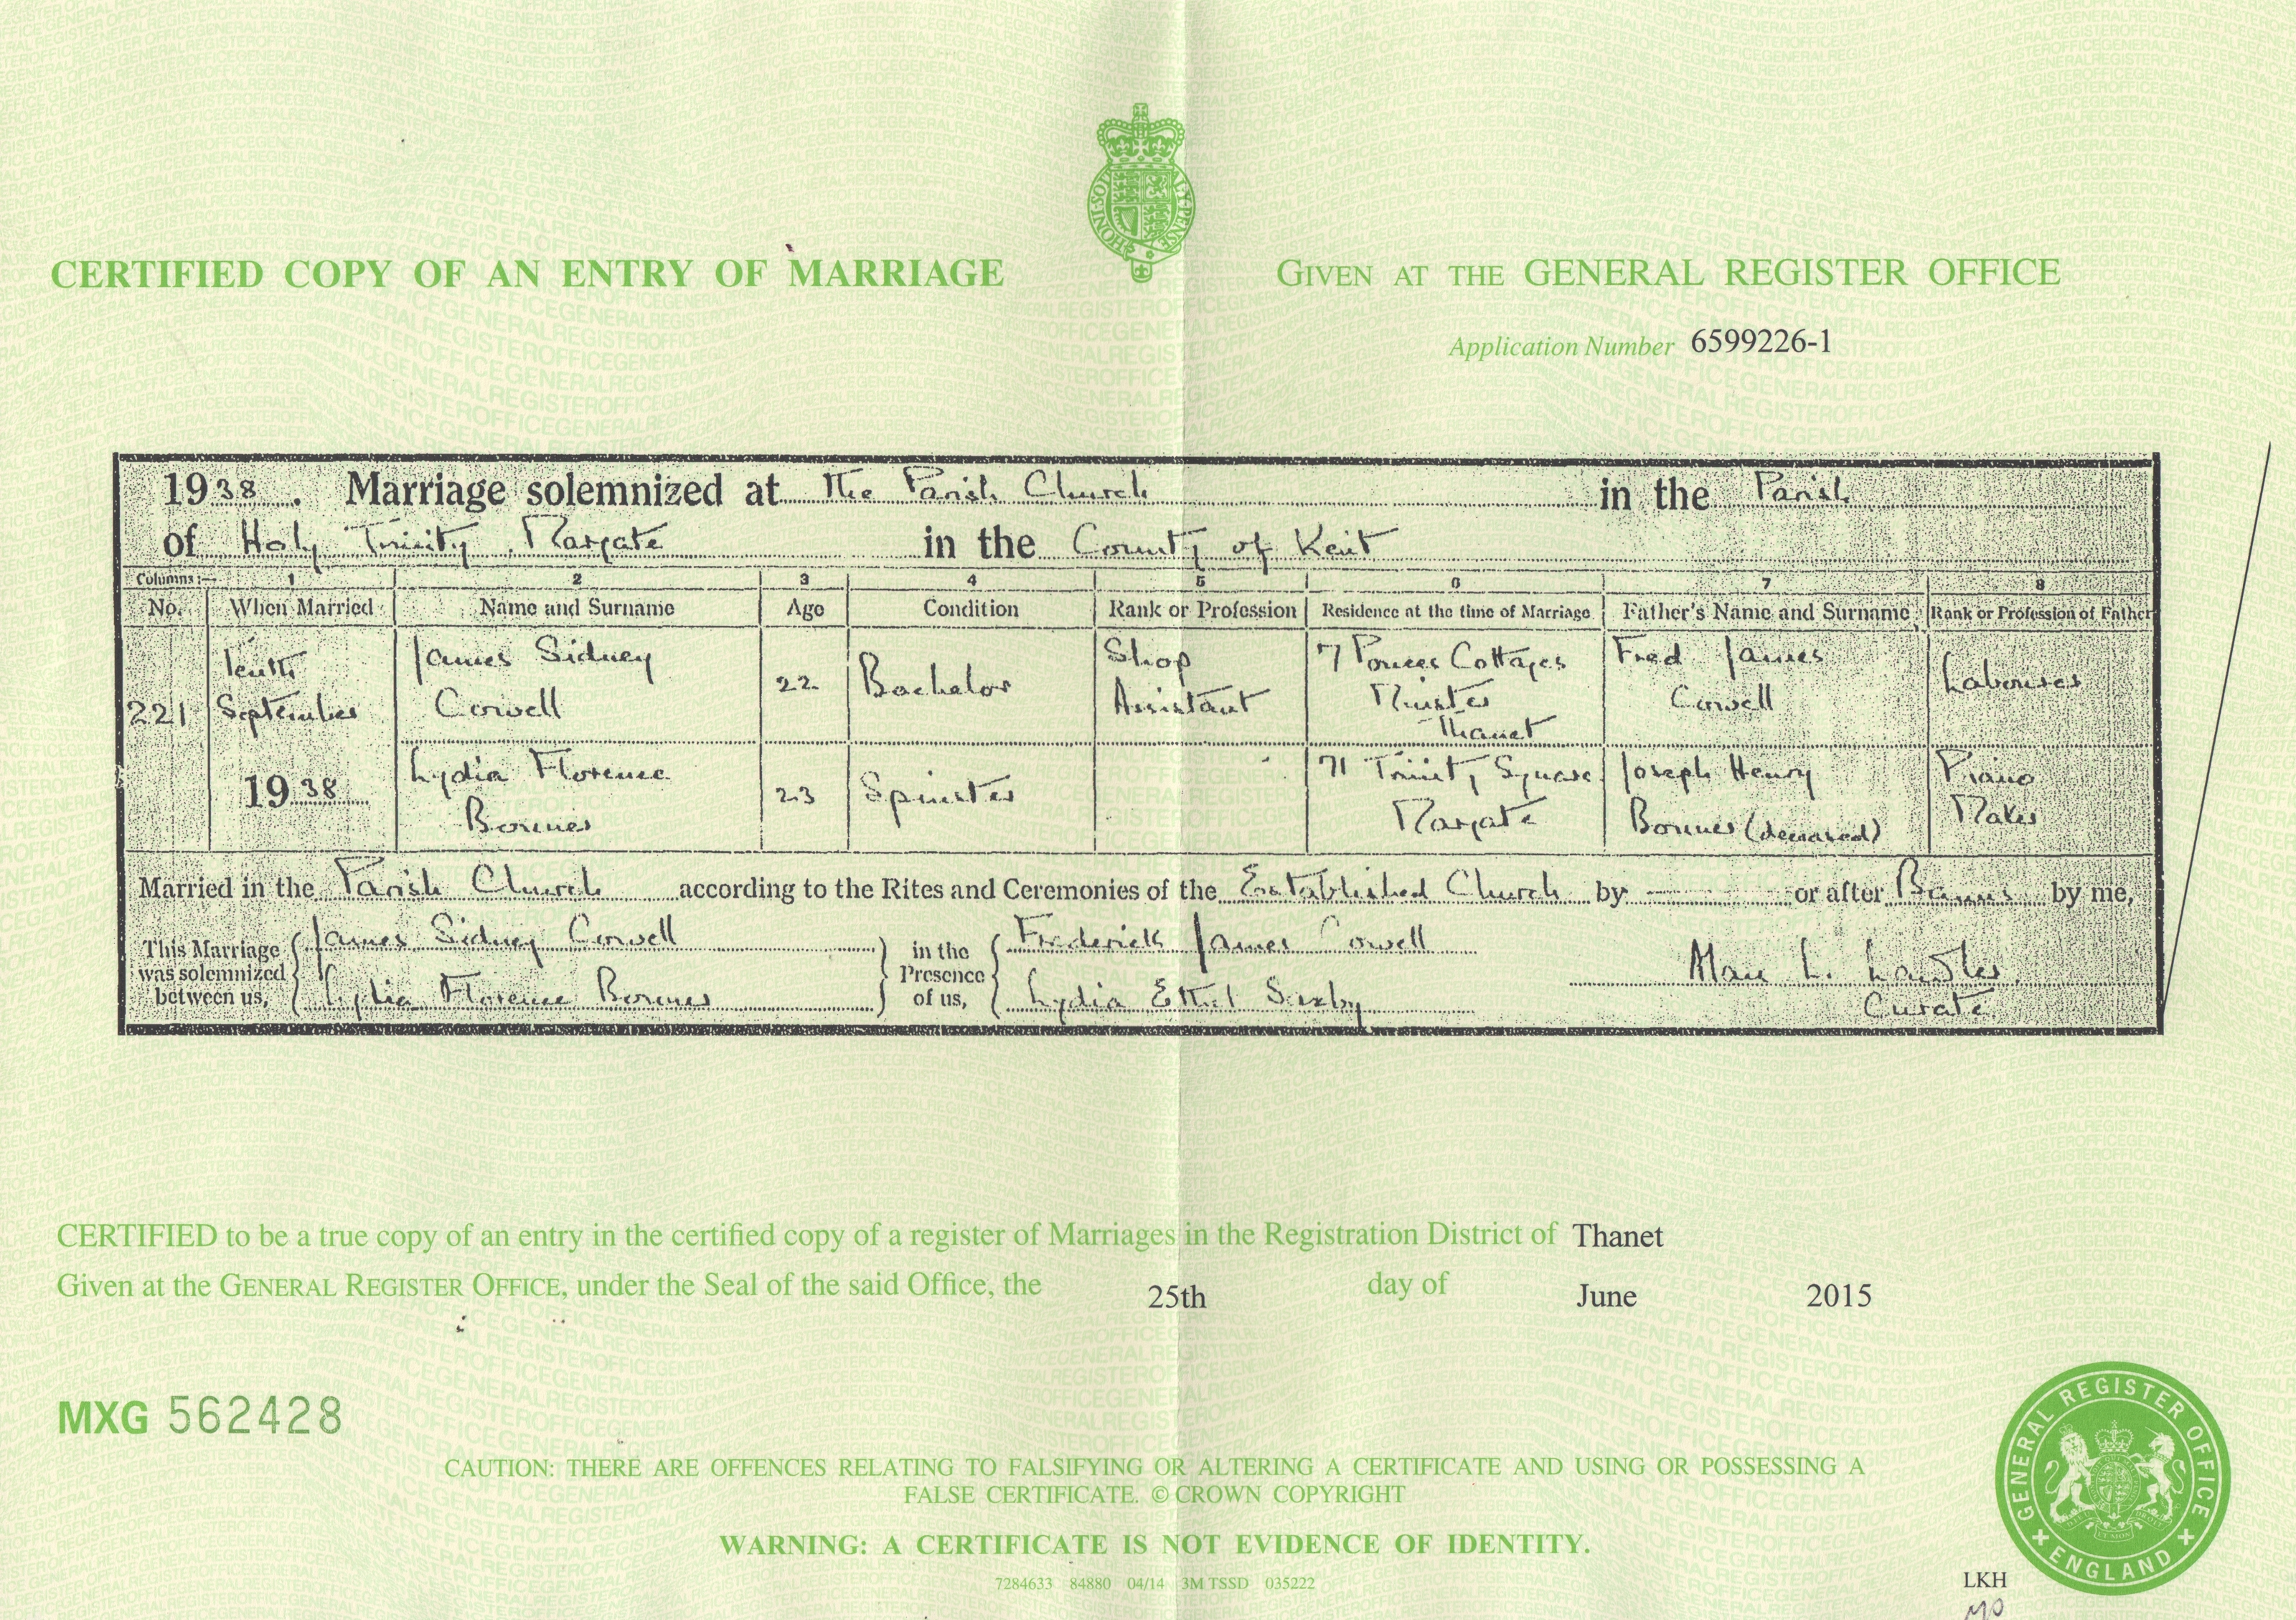 James Sidney Cowell - Lydia Florence Bonner - marriage certificate